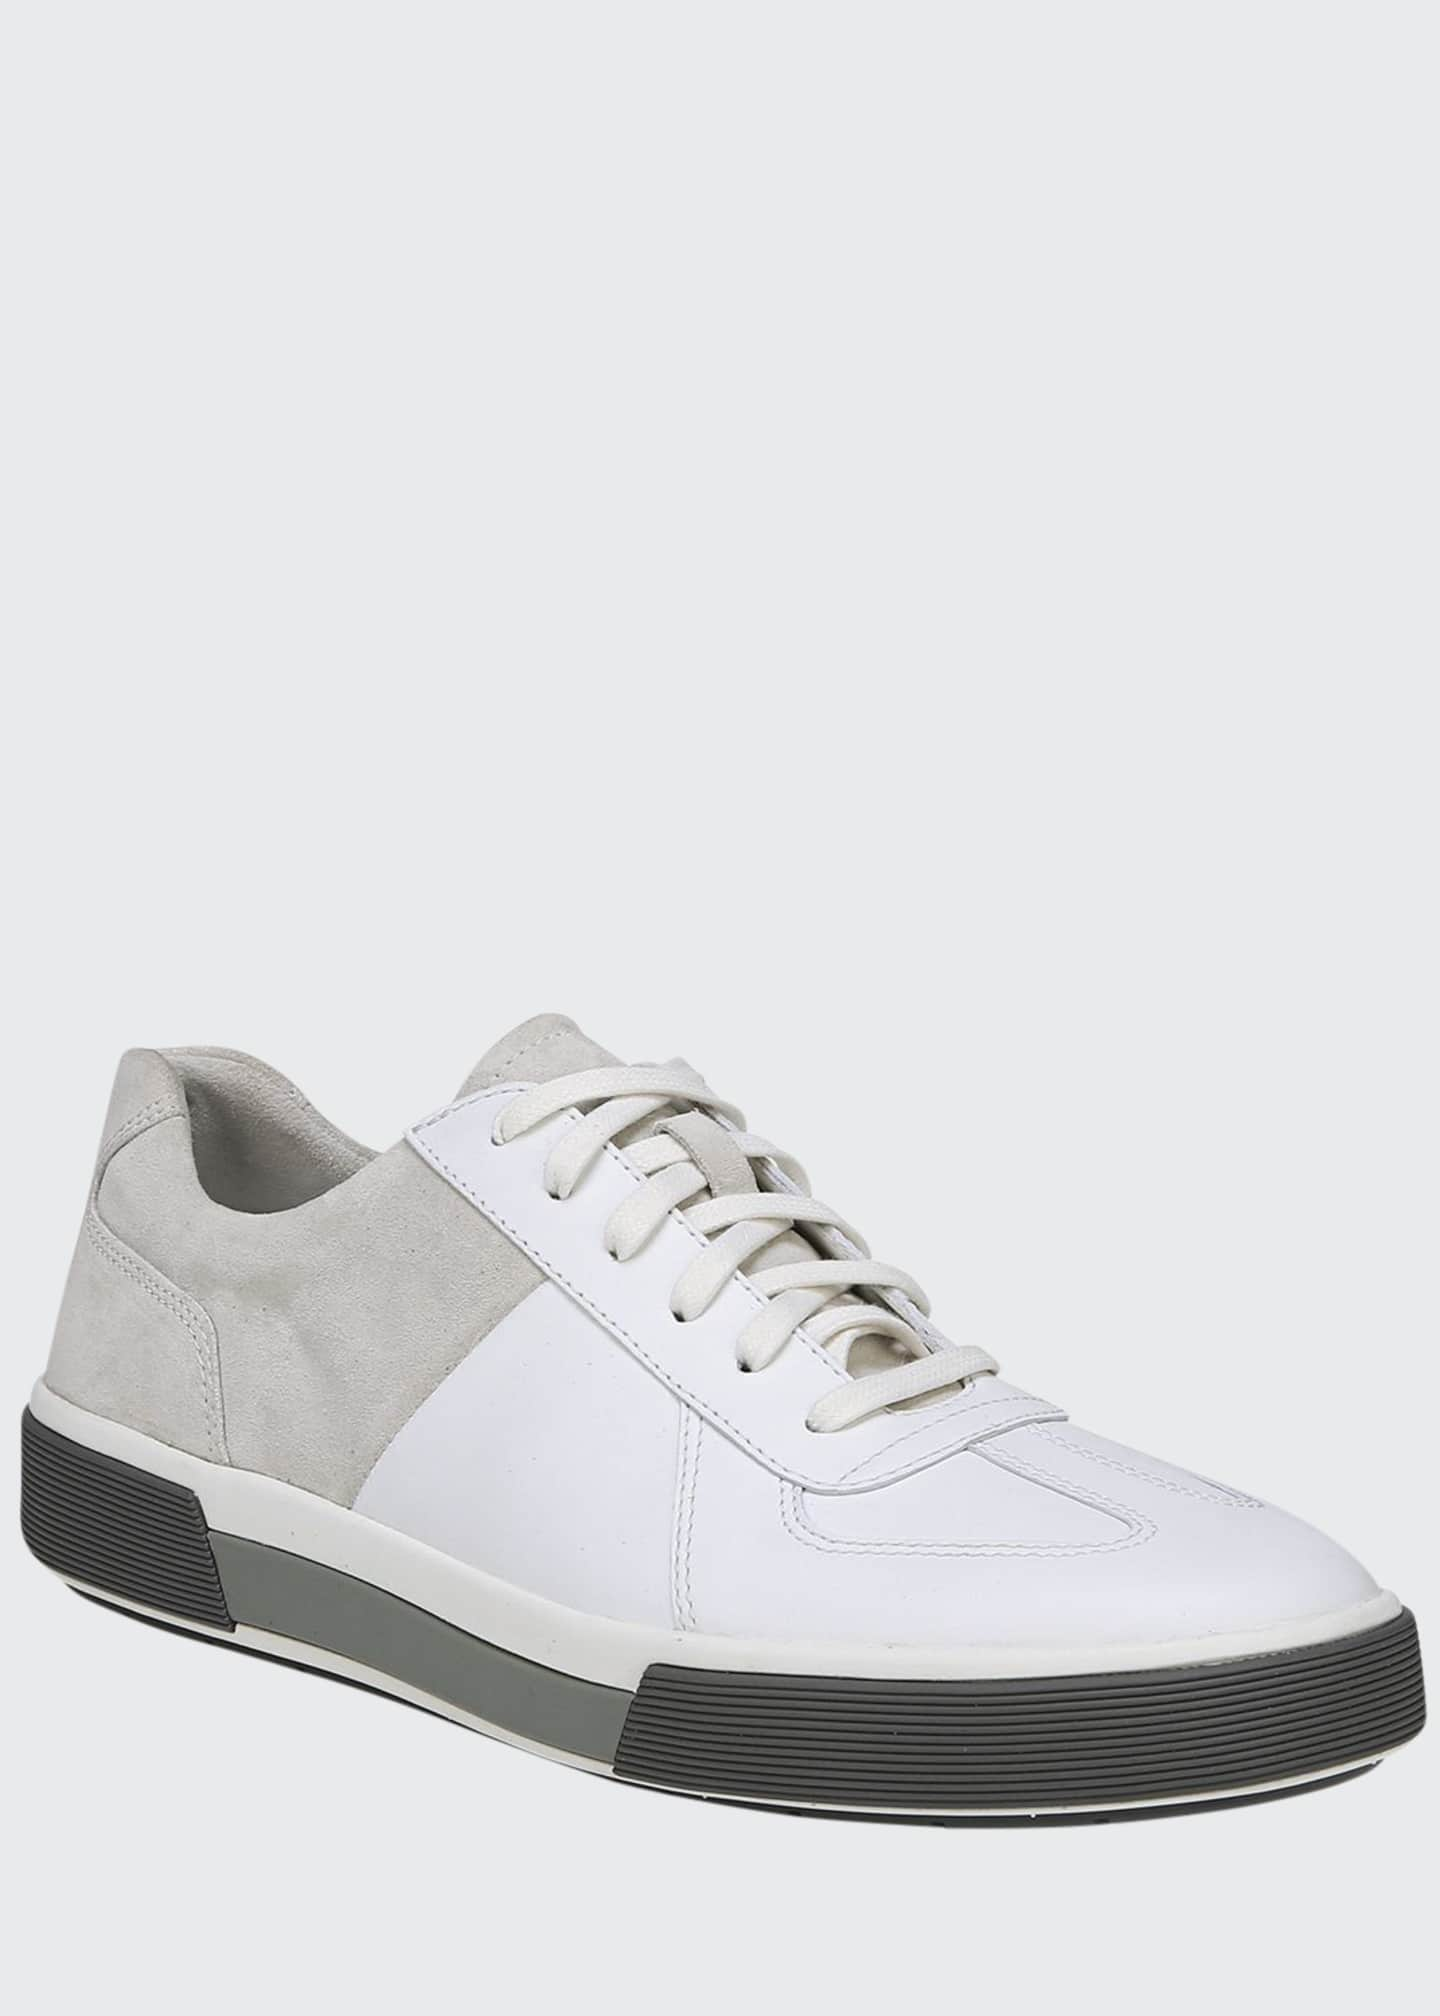 Image 1 of 5: Men's Rogue Suede & Leather Low-Top Sneakers